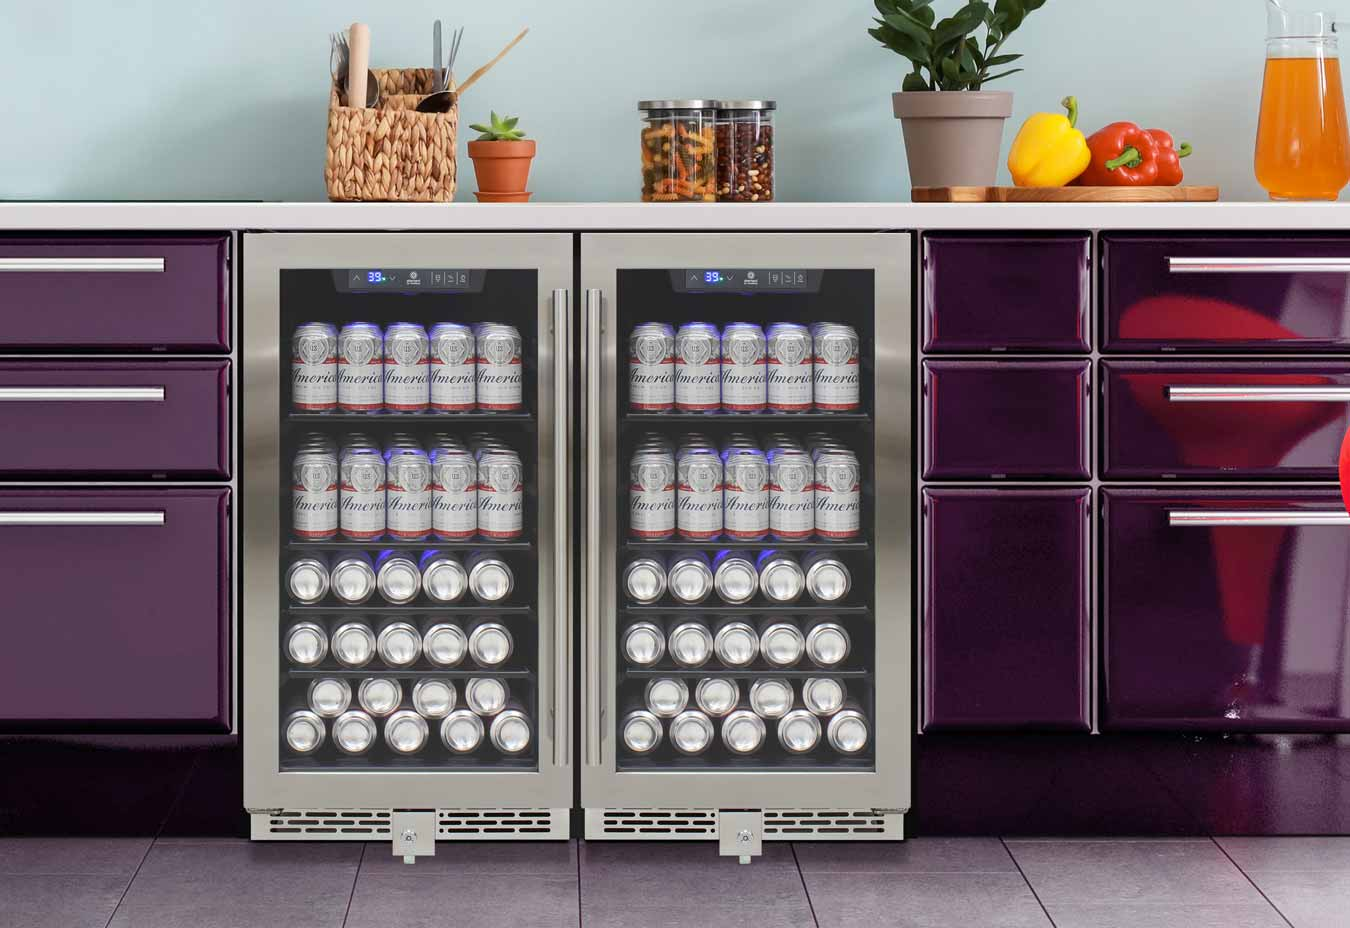 stainless trim beverage coolers installed next to each other into purple cabinets